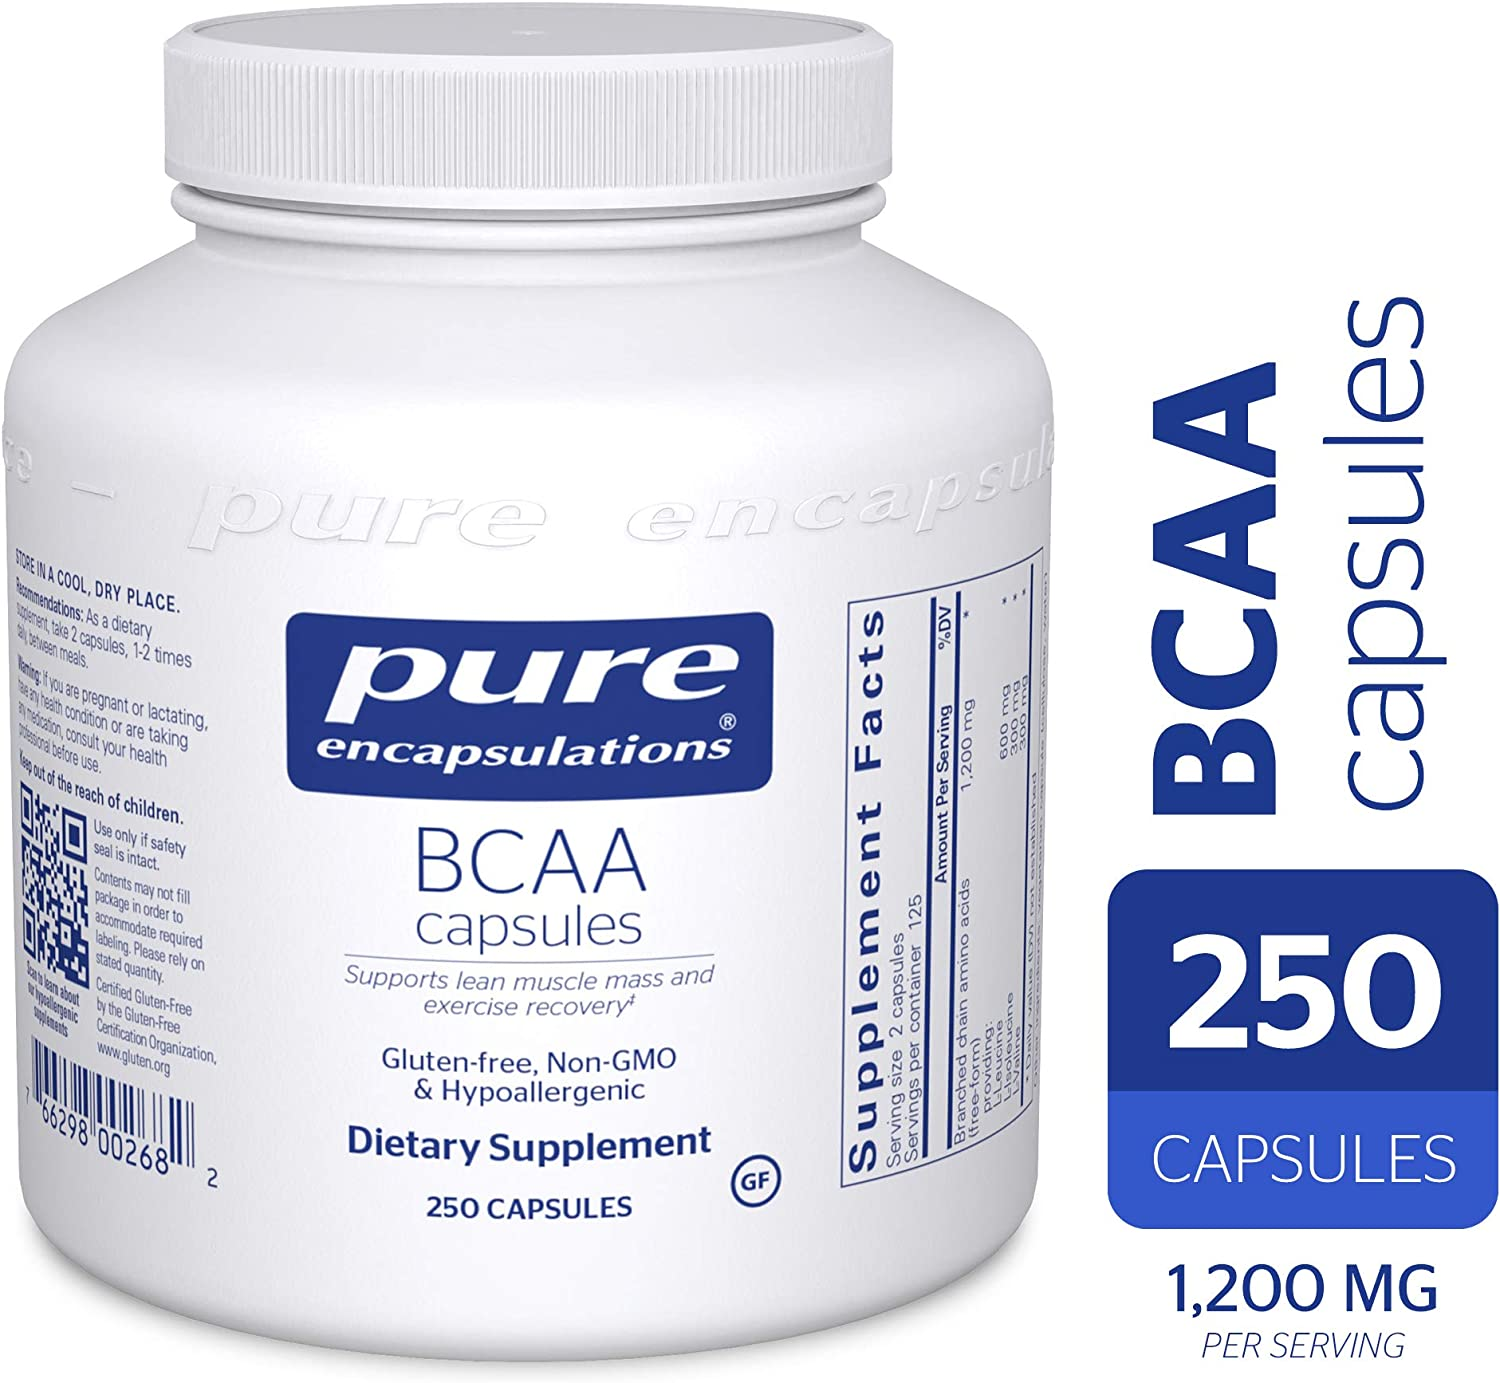 Pure Encapsulations – BCAA Capsules – Hypoallergenic Supplement To Support Muscle Function During Exercise* – 250 Capsules